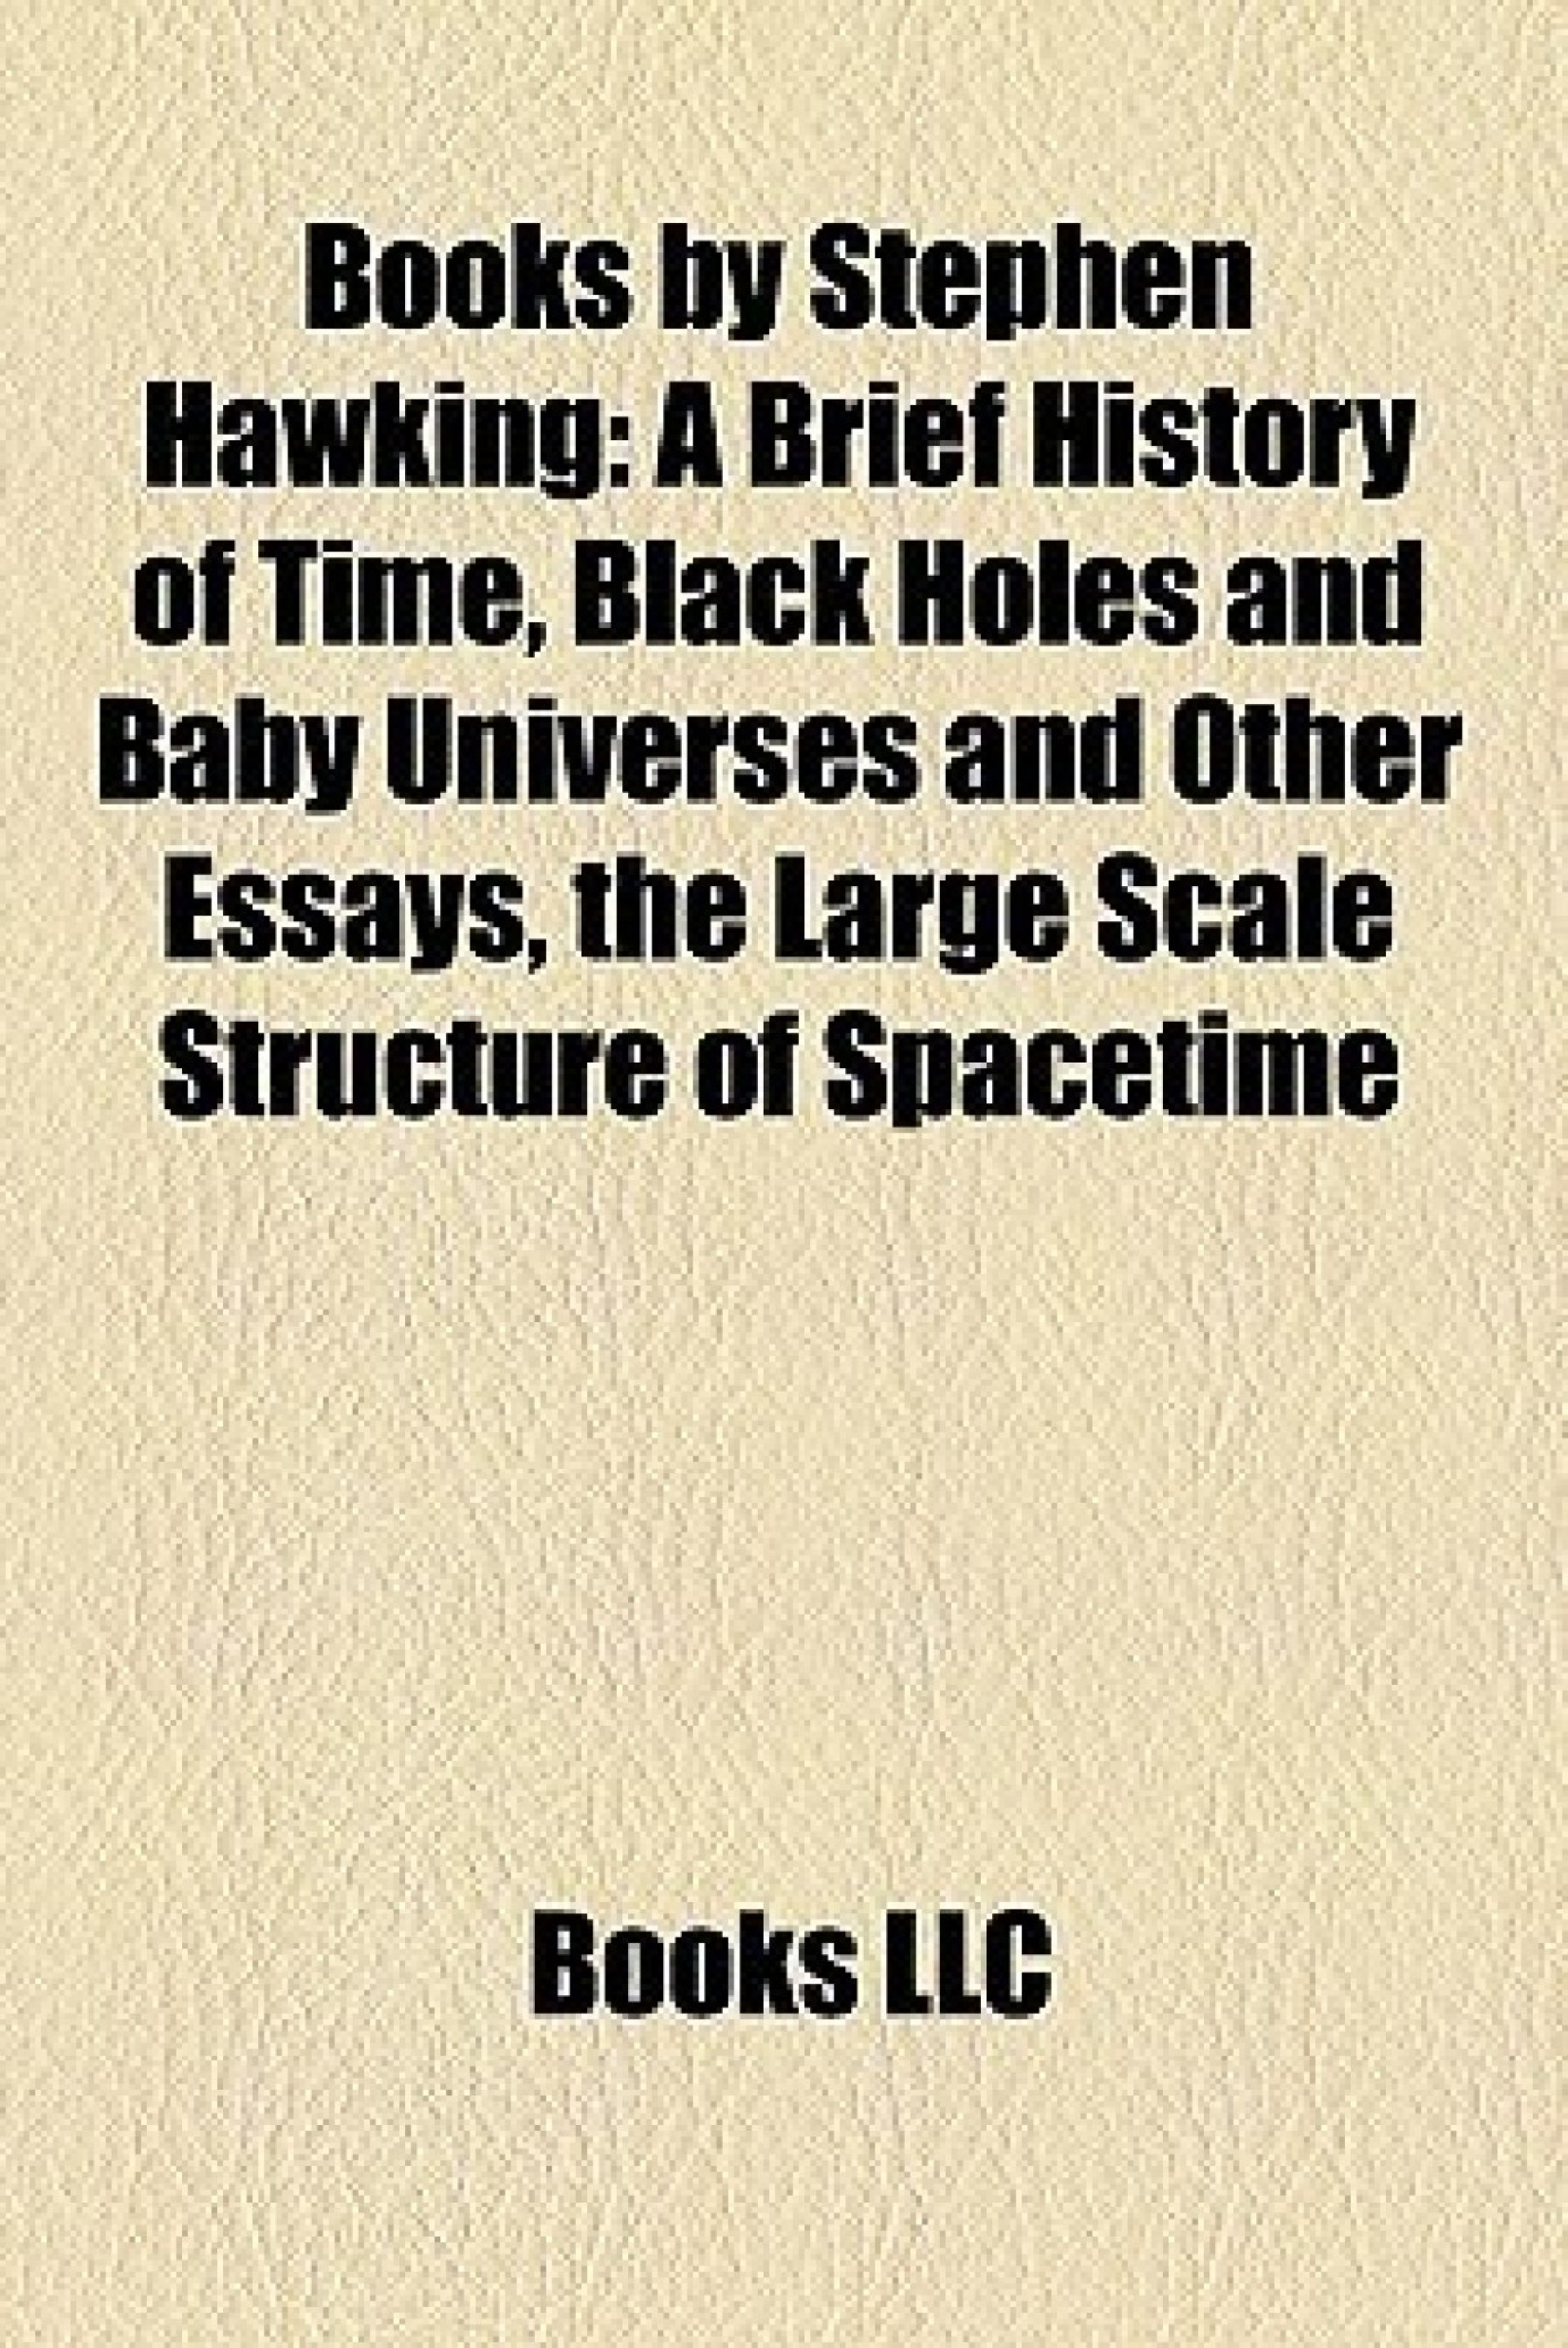 021 Books By Stephen Hawking Study Guide Brief History Of Time Original Imaearv4shvqmzh7q90 Black Holes And Baby Universes Other Essays Essay Unique Review Ebook Free Download Amazon 1920